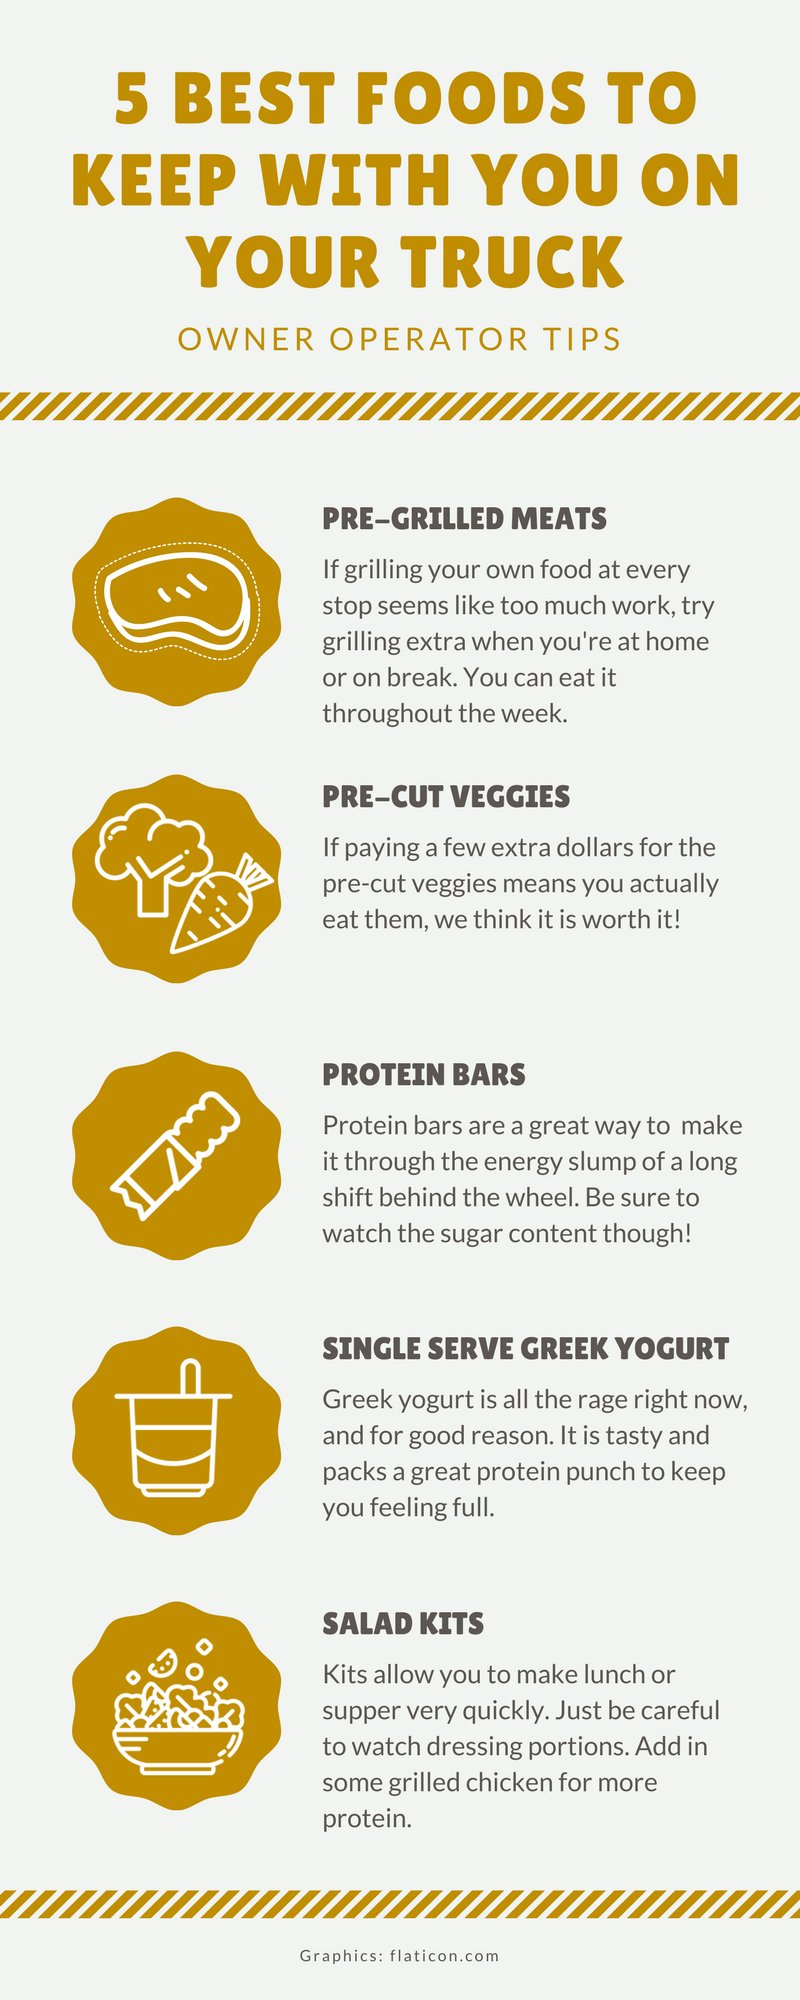 5 Best Foods to Keep With You On Your Truck.png